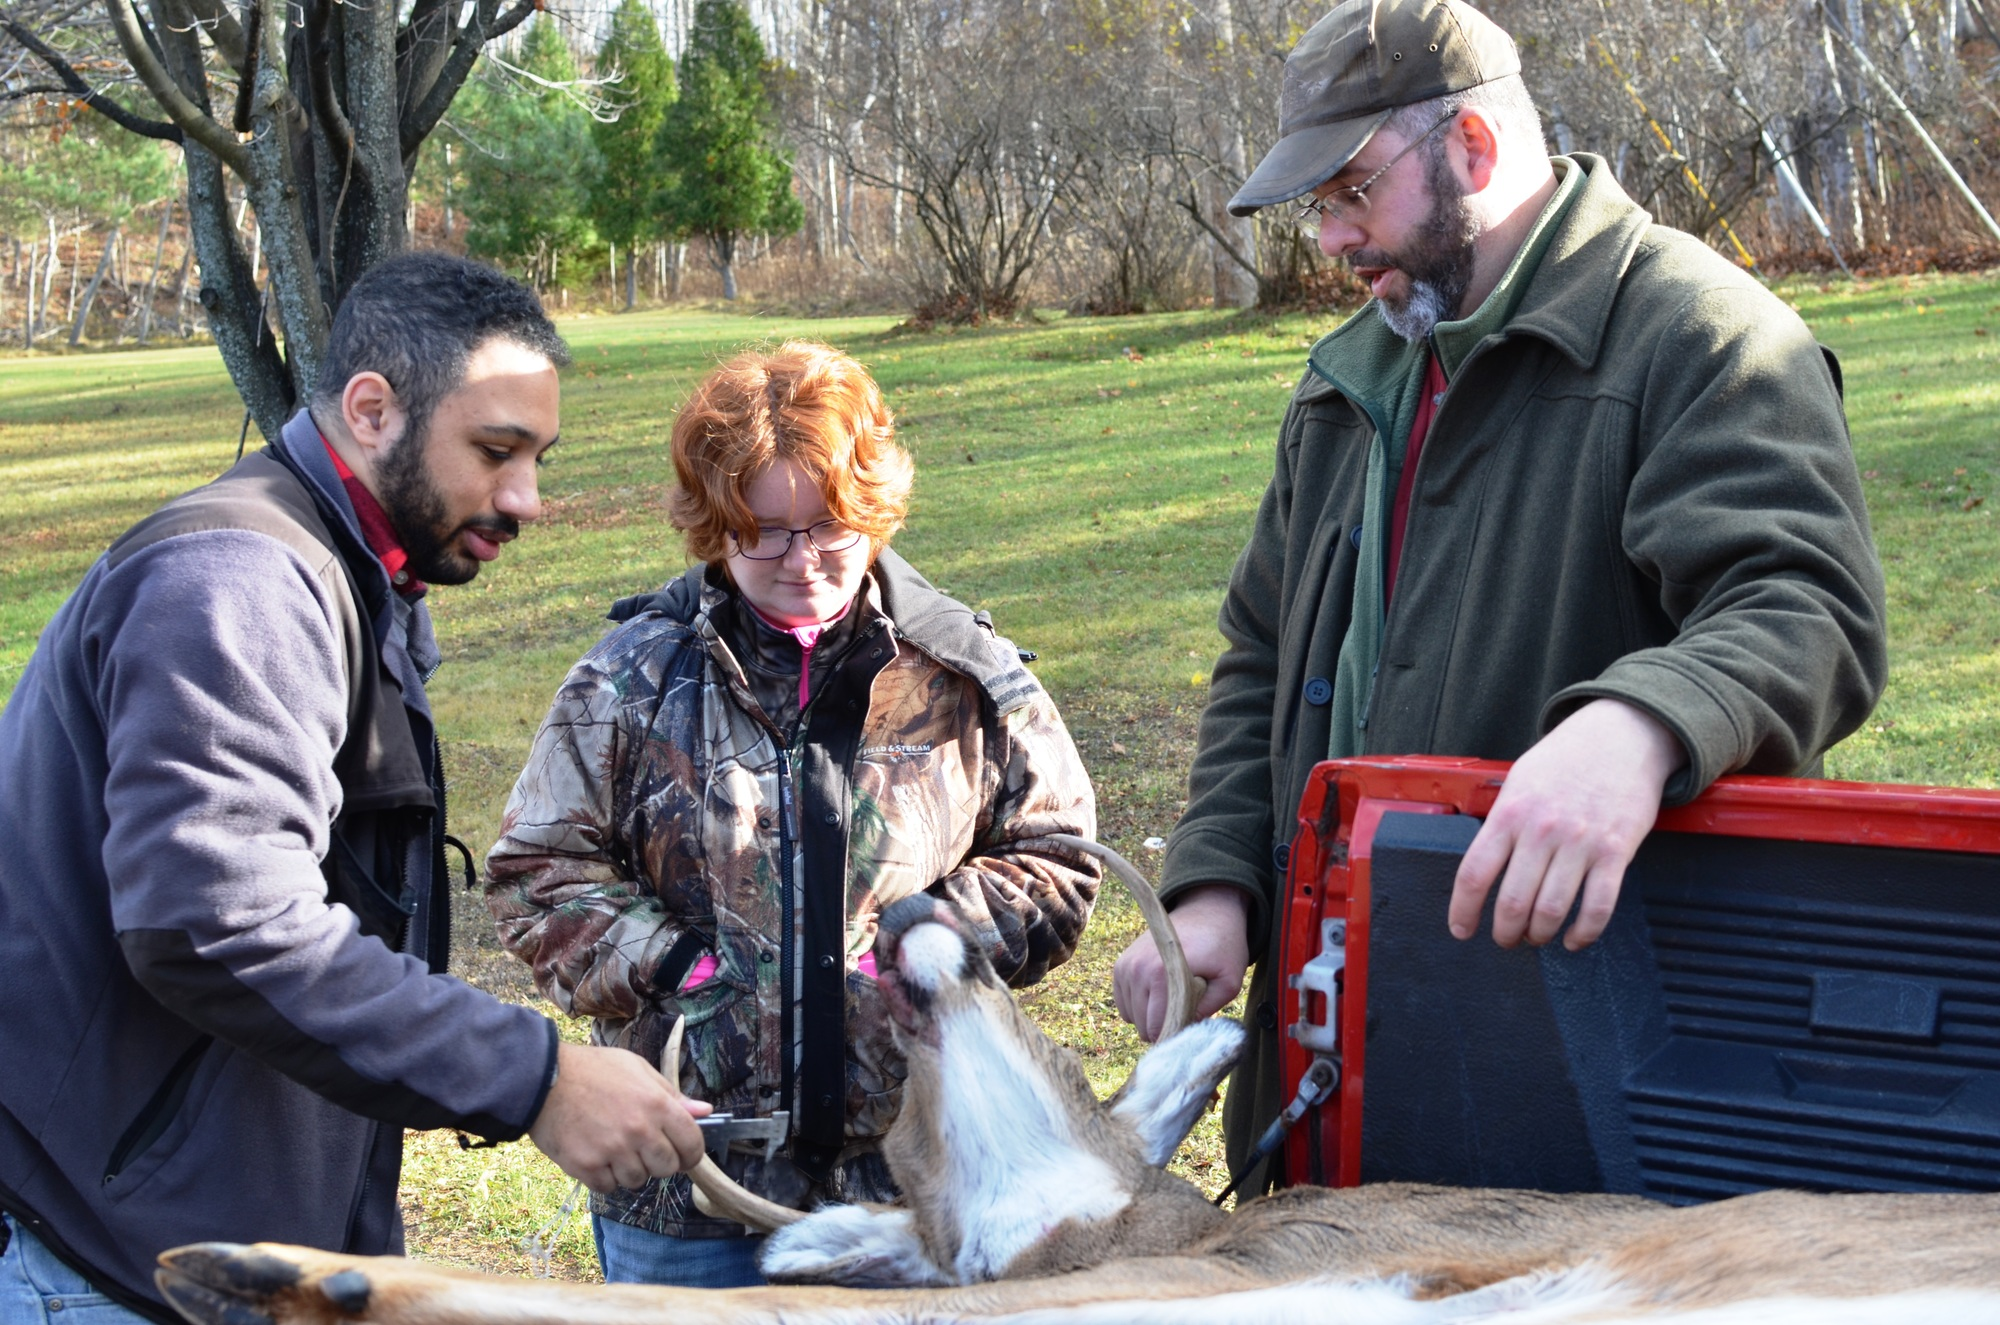 Northern Michigan University students check in a deer in Marquette